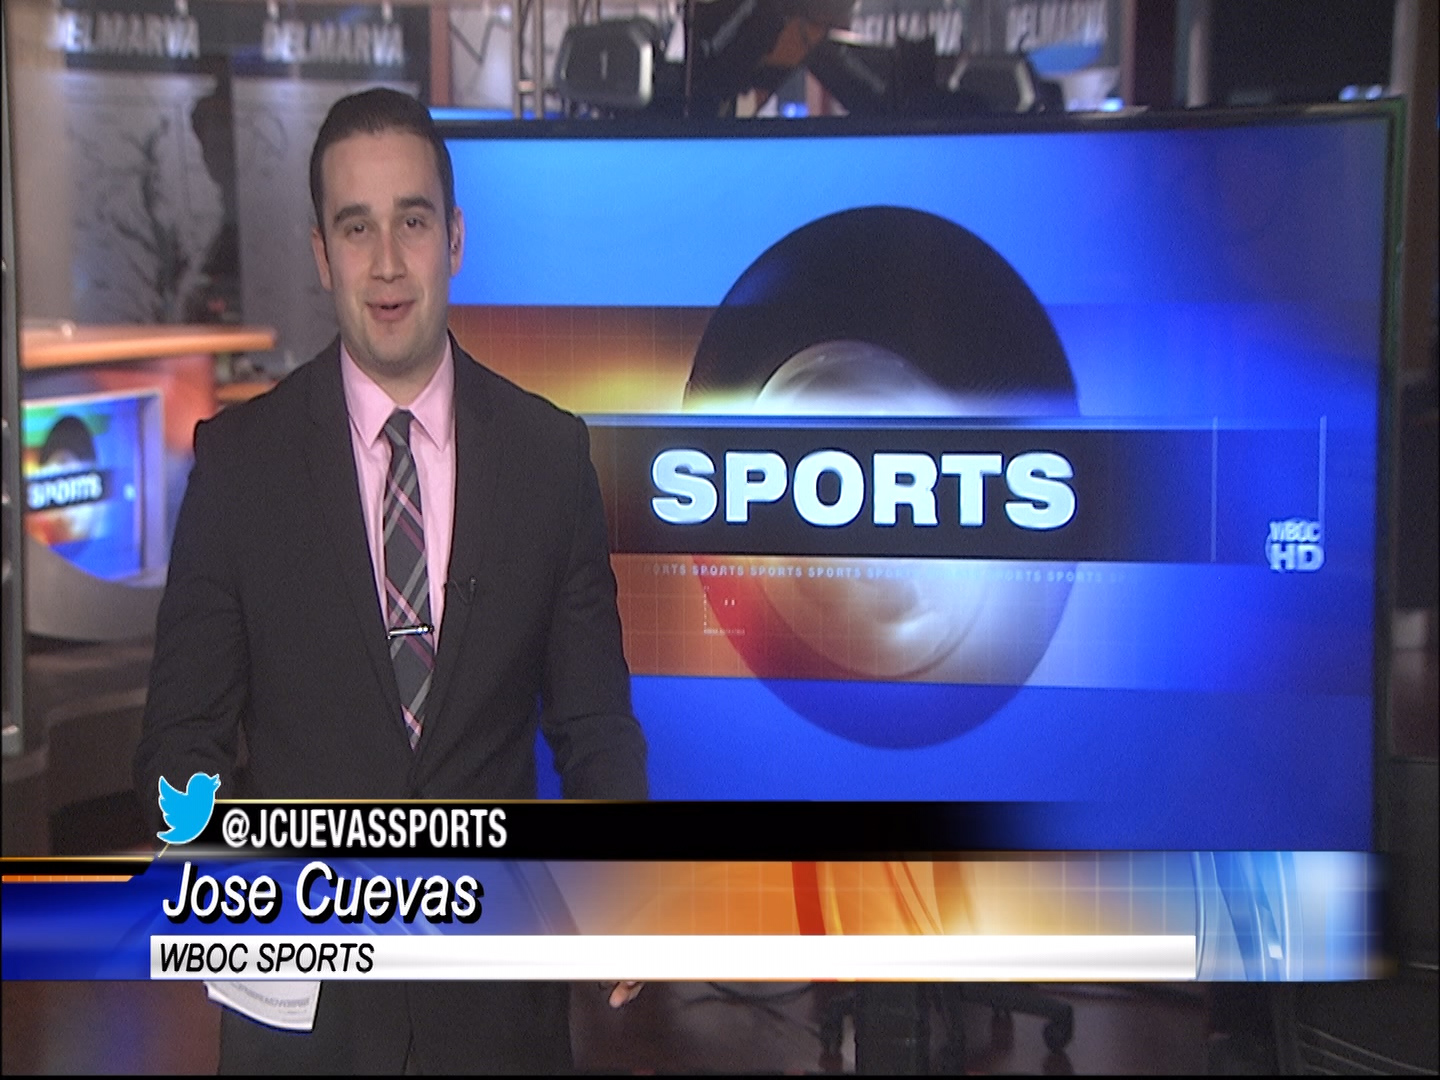 WBOC Sports Report – Wednesday March 13, 2019